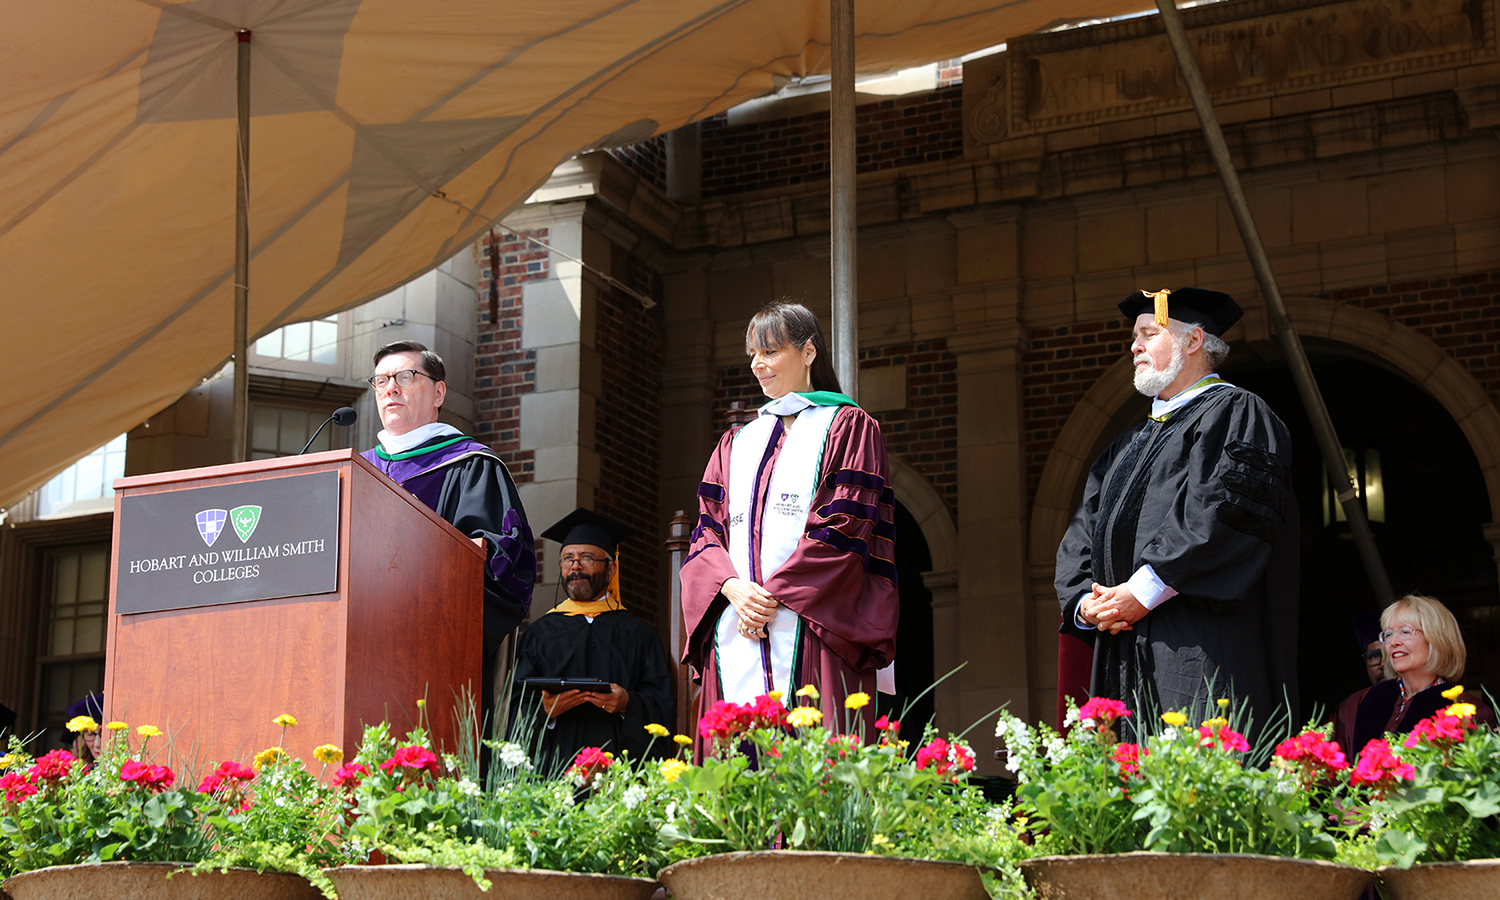 Education strategist and the founder of the Posse Foundation Deborah Bial receives her honorary degree from President Mark D. Gearan during Commencement.